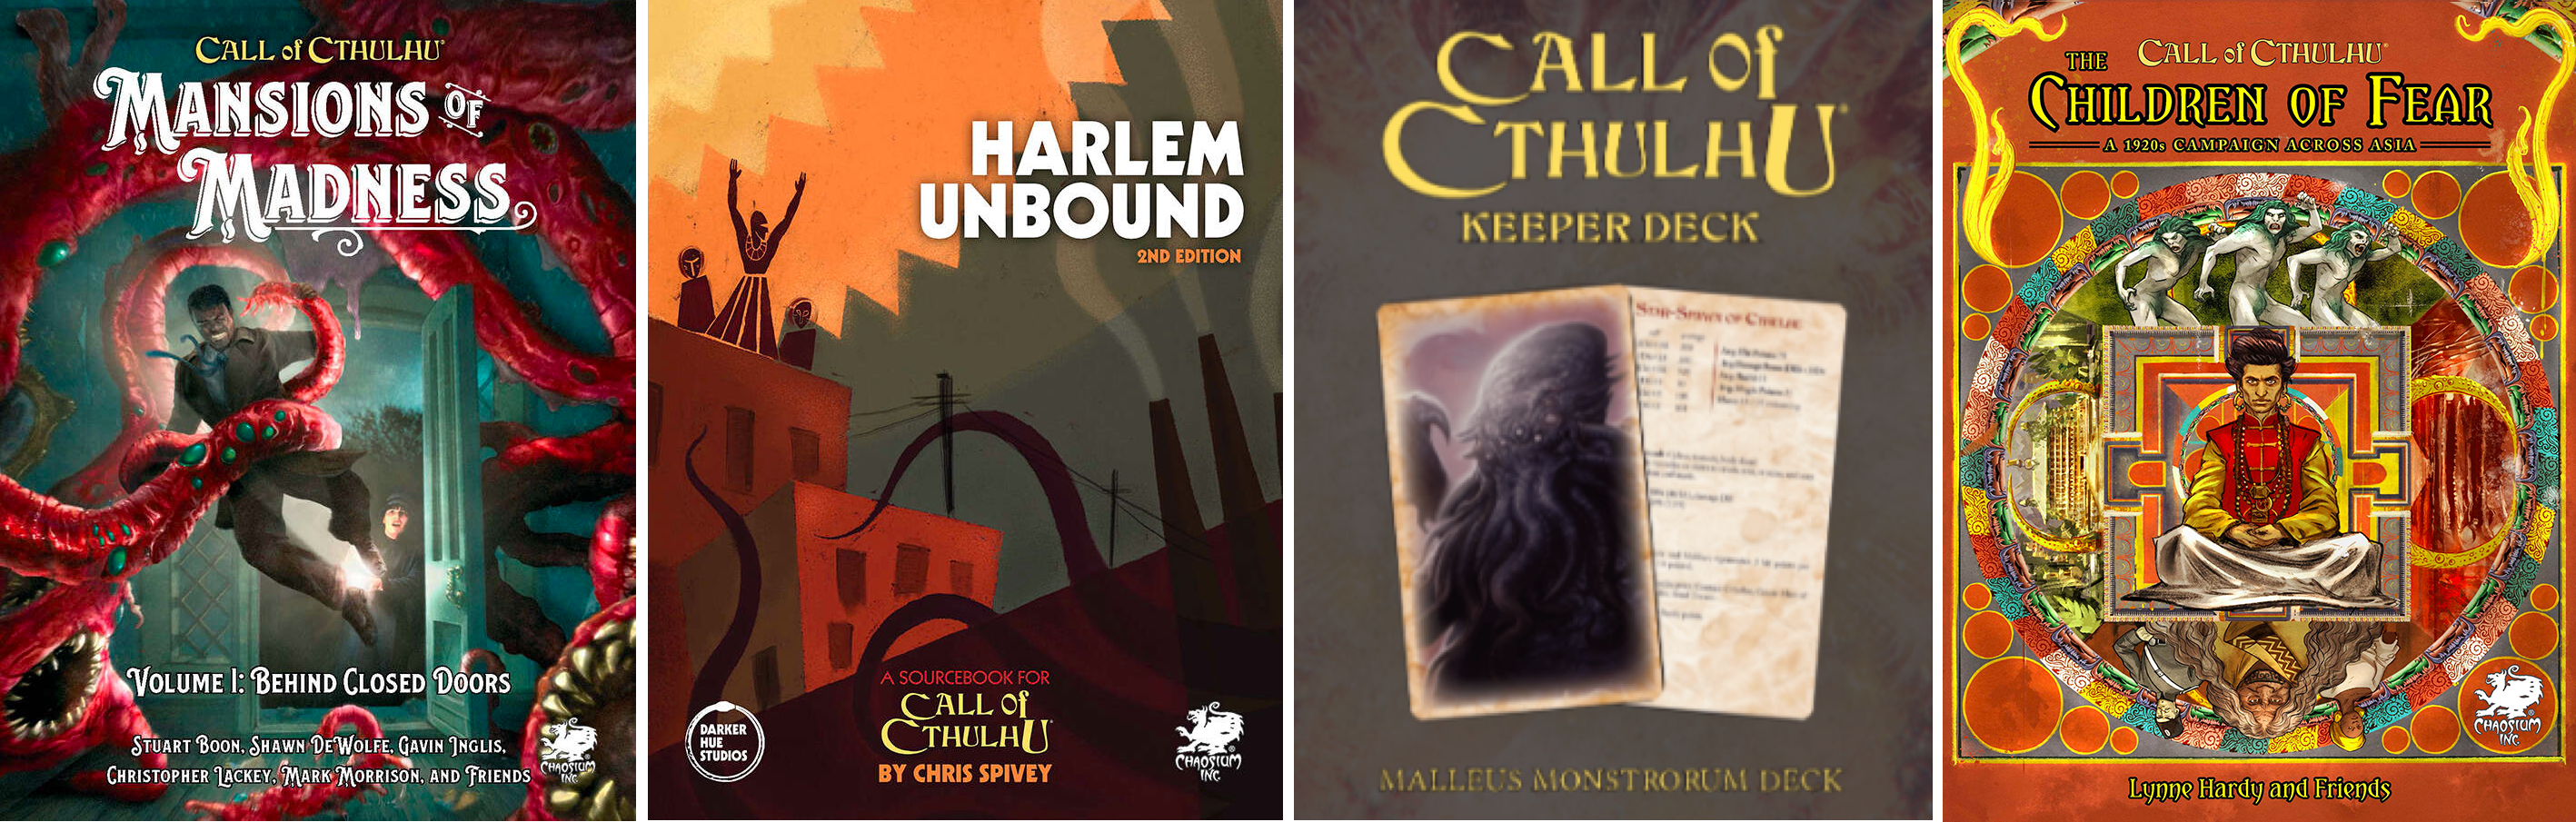 Call of Cthulhu reviewed titles Jan 2021